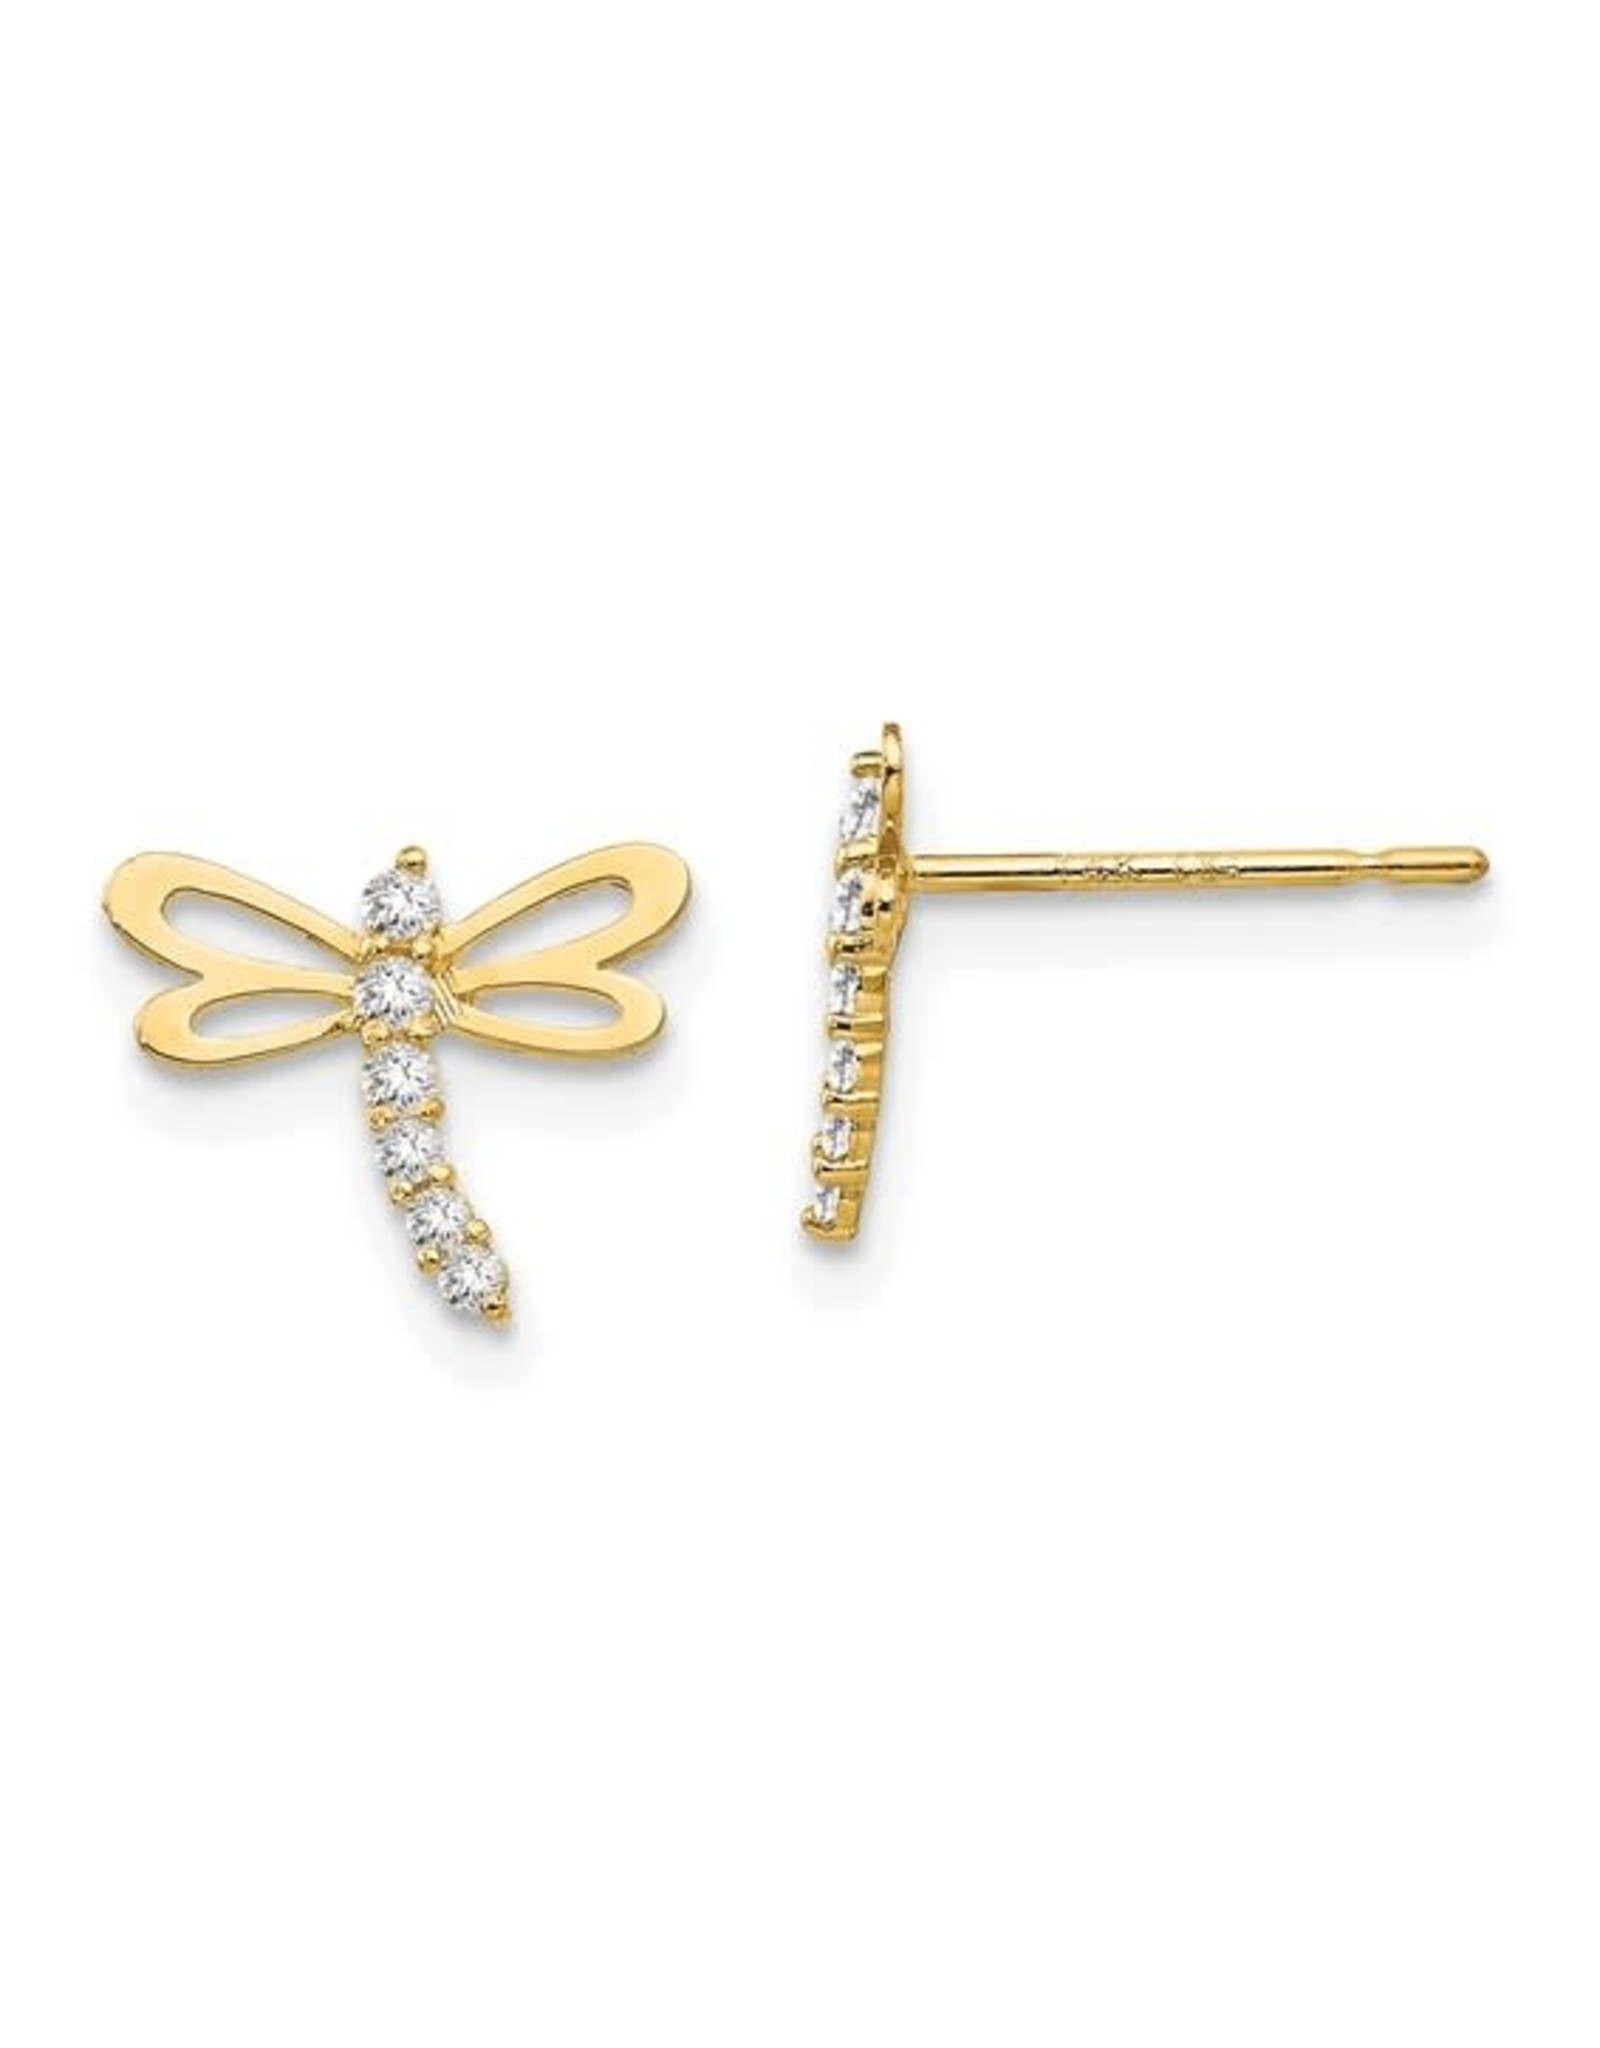 14K Yellow Gold Dragonfly Earrings with Sparkling Zirconias